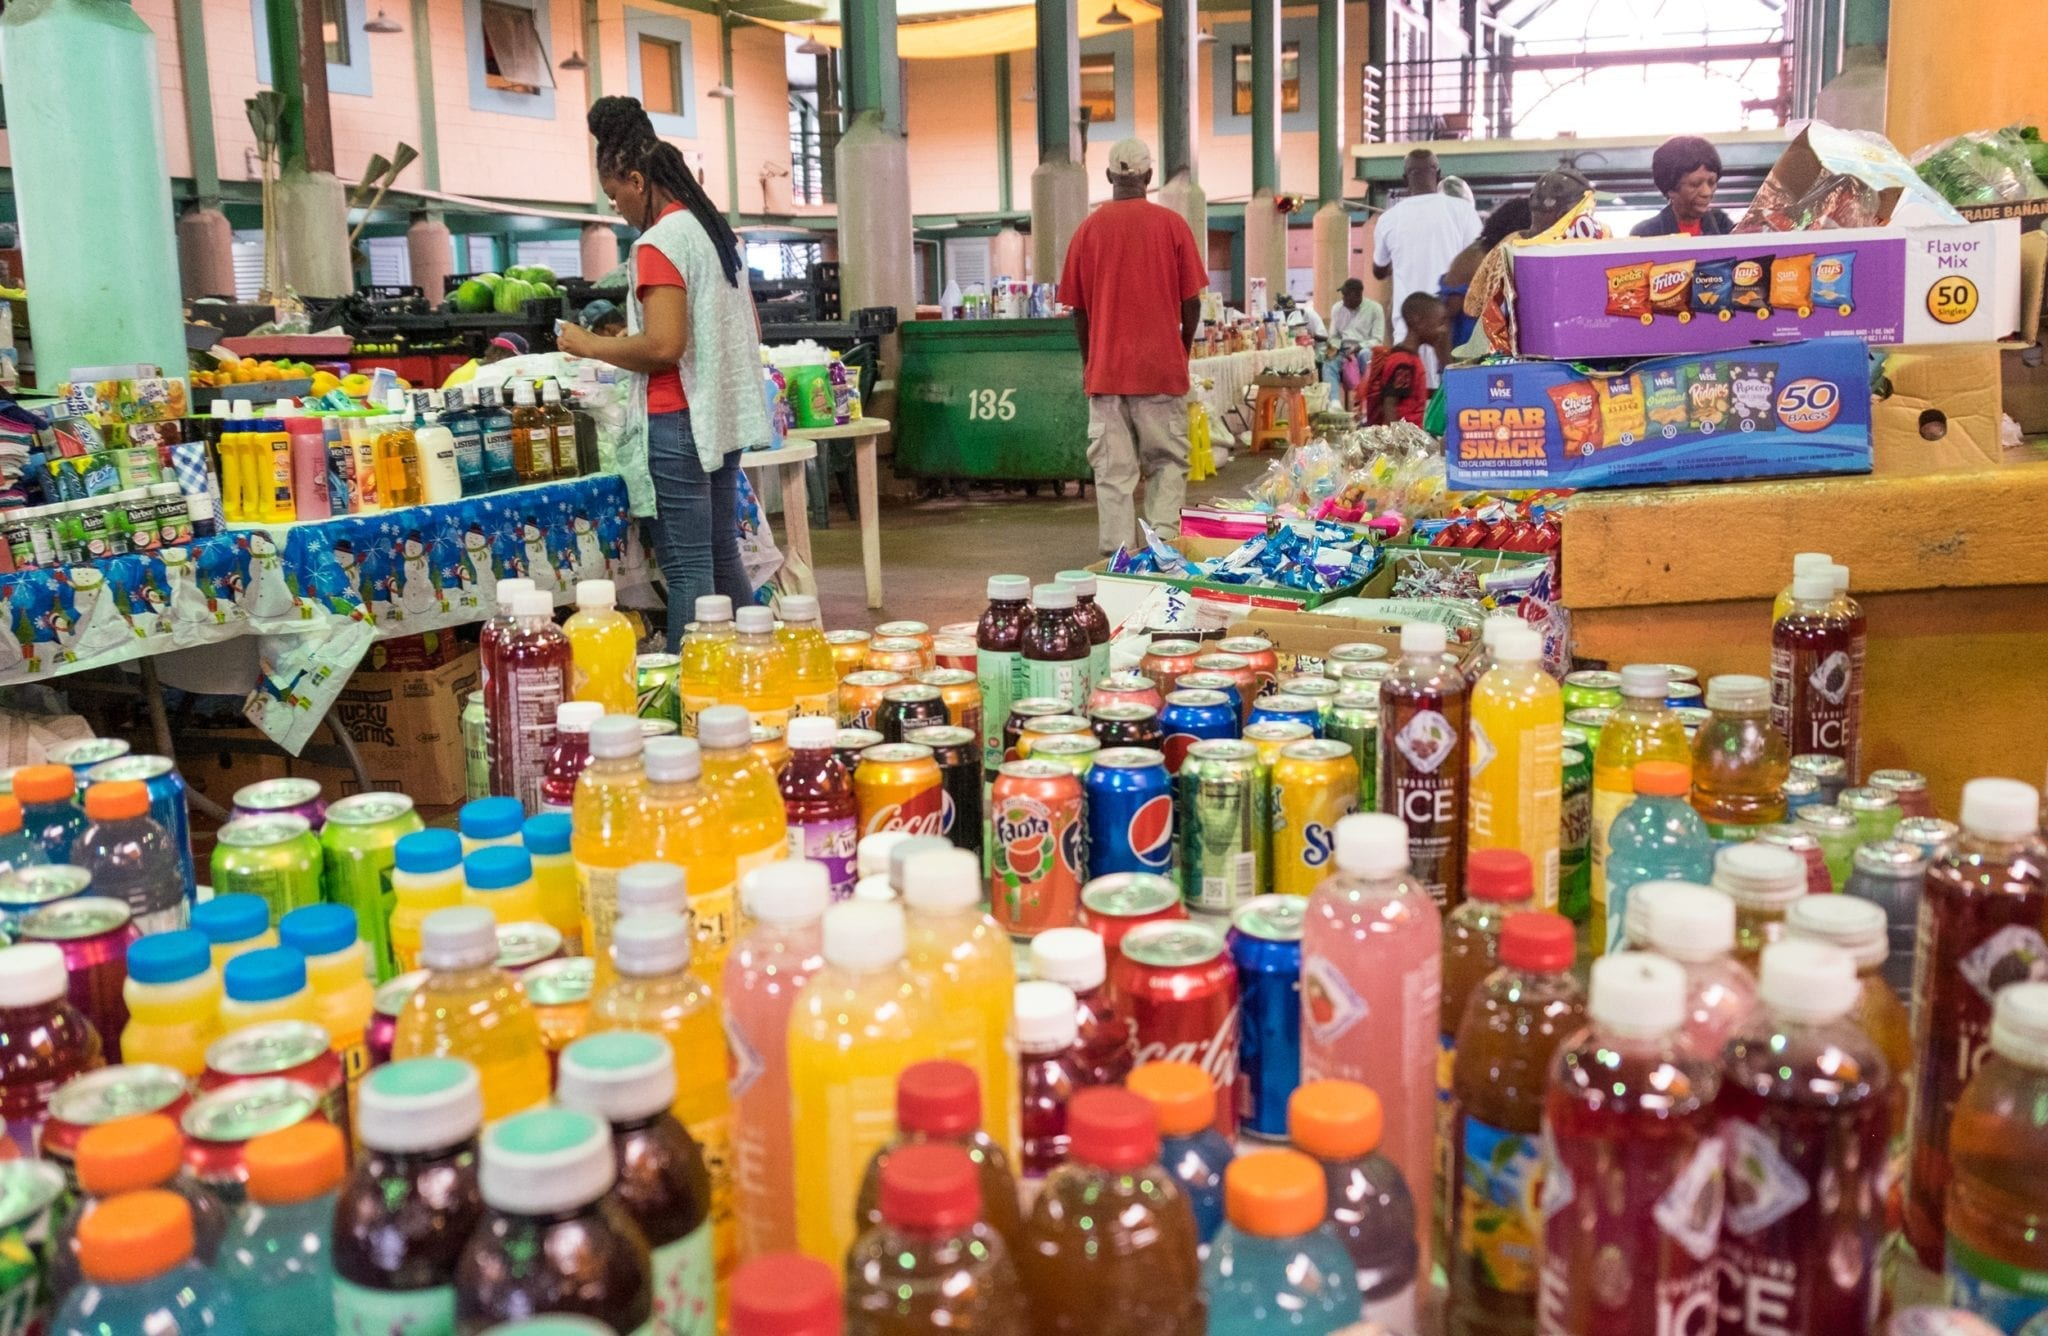 Dozens of bottled drinks on a table in a market in St. John's, Antigua